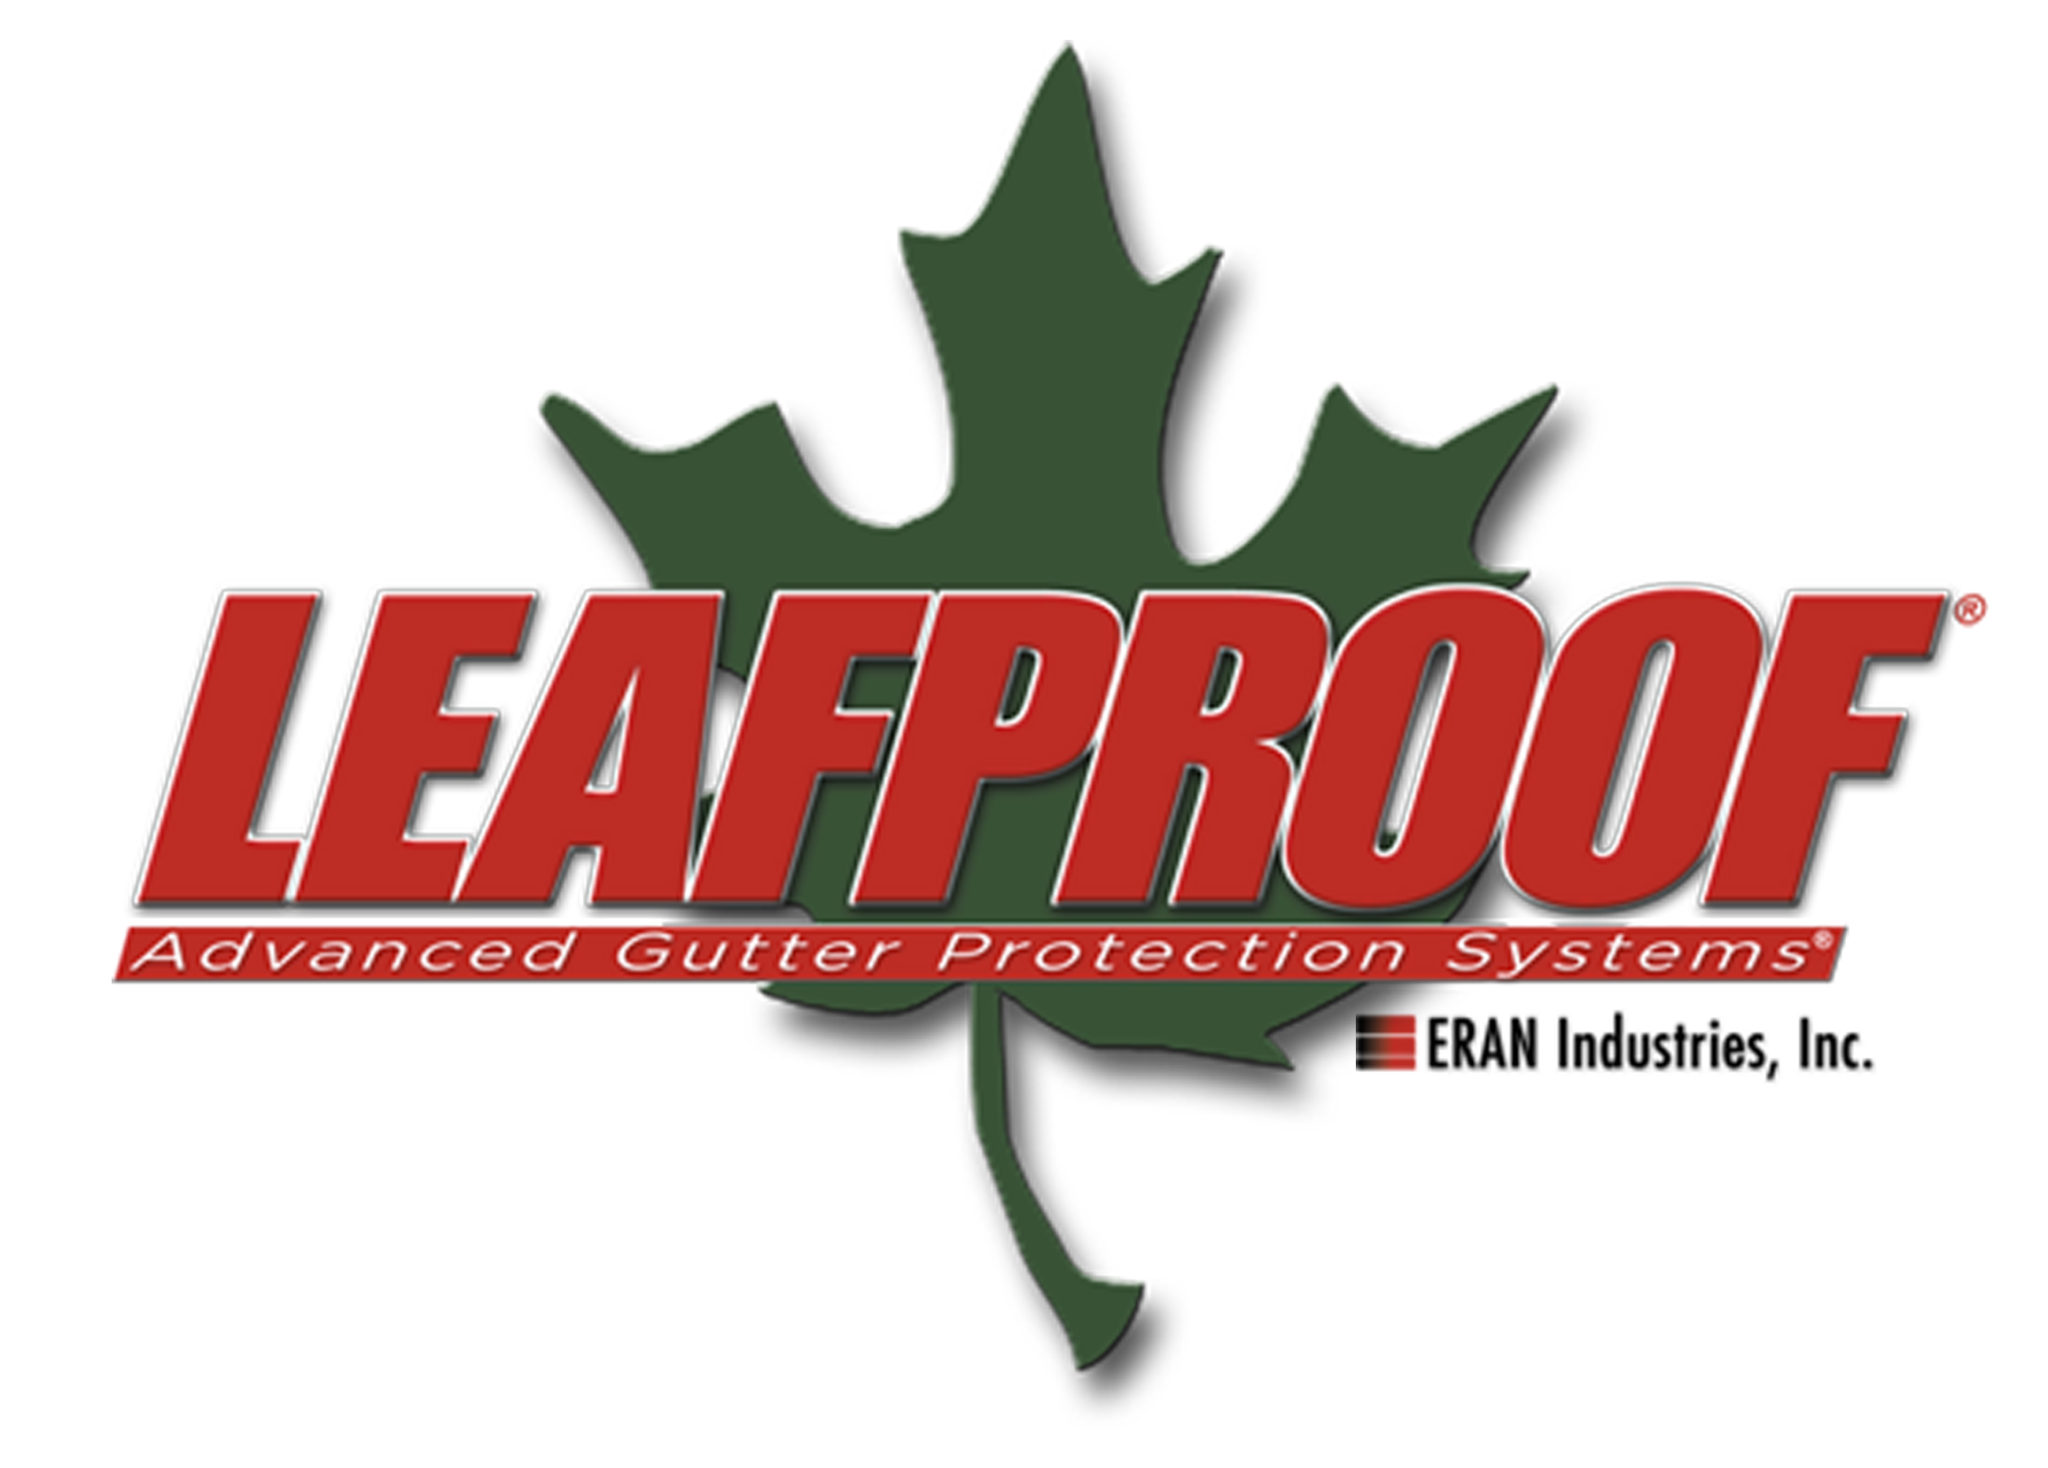 Leafproof Advanced Gutter Protection Systems